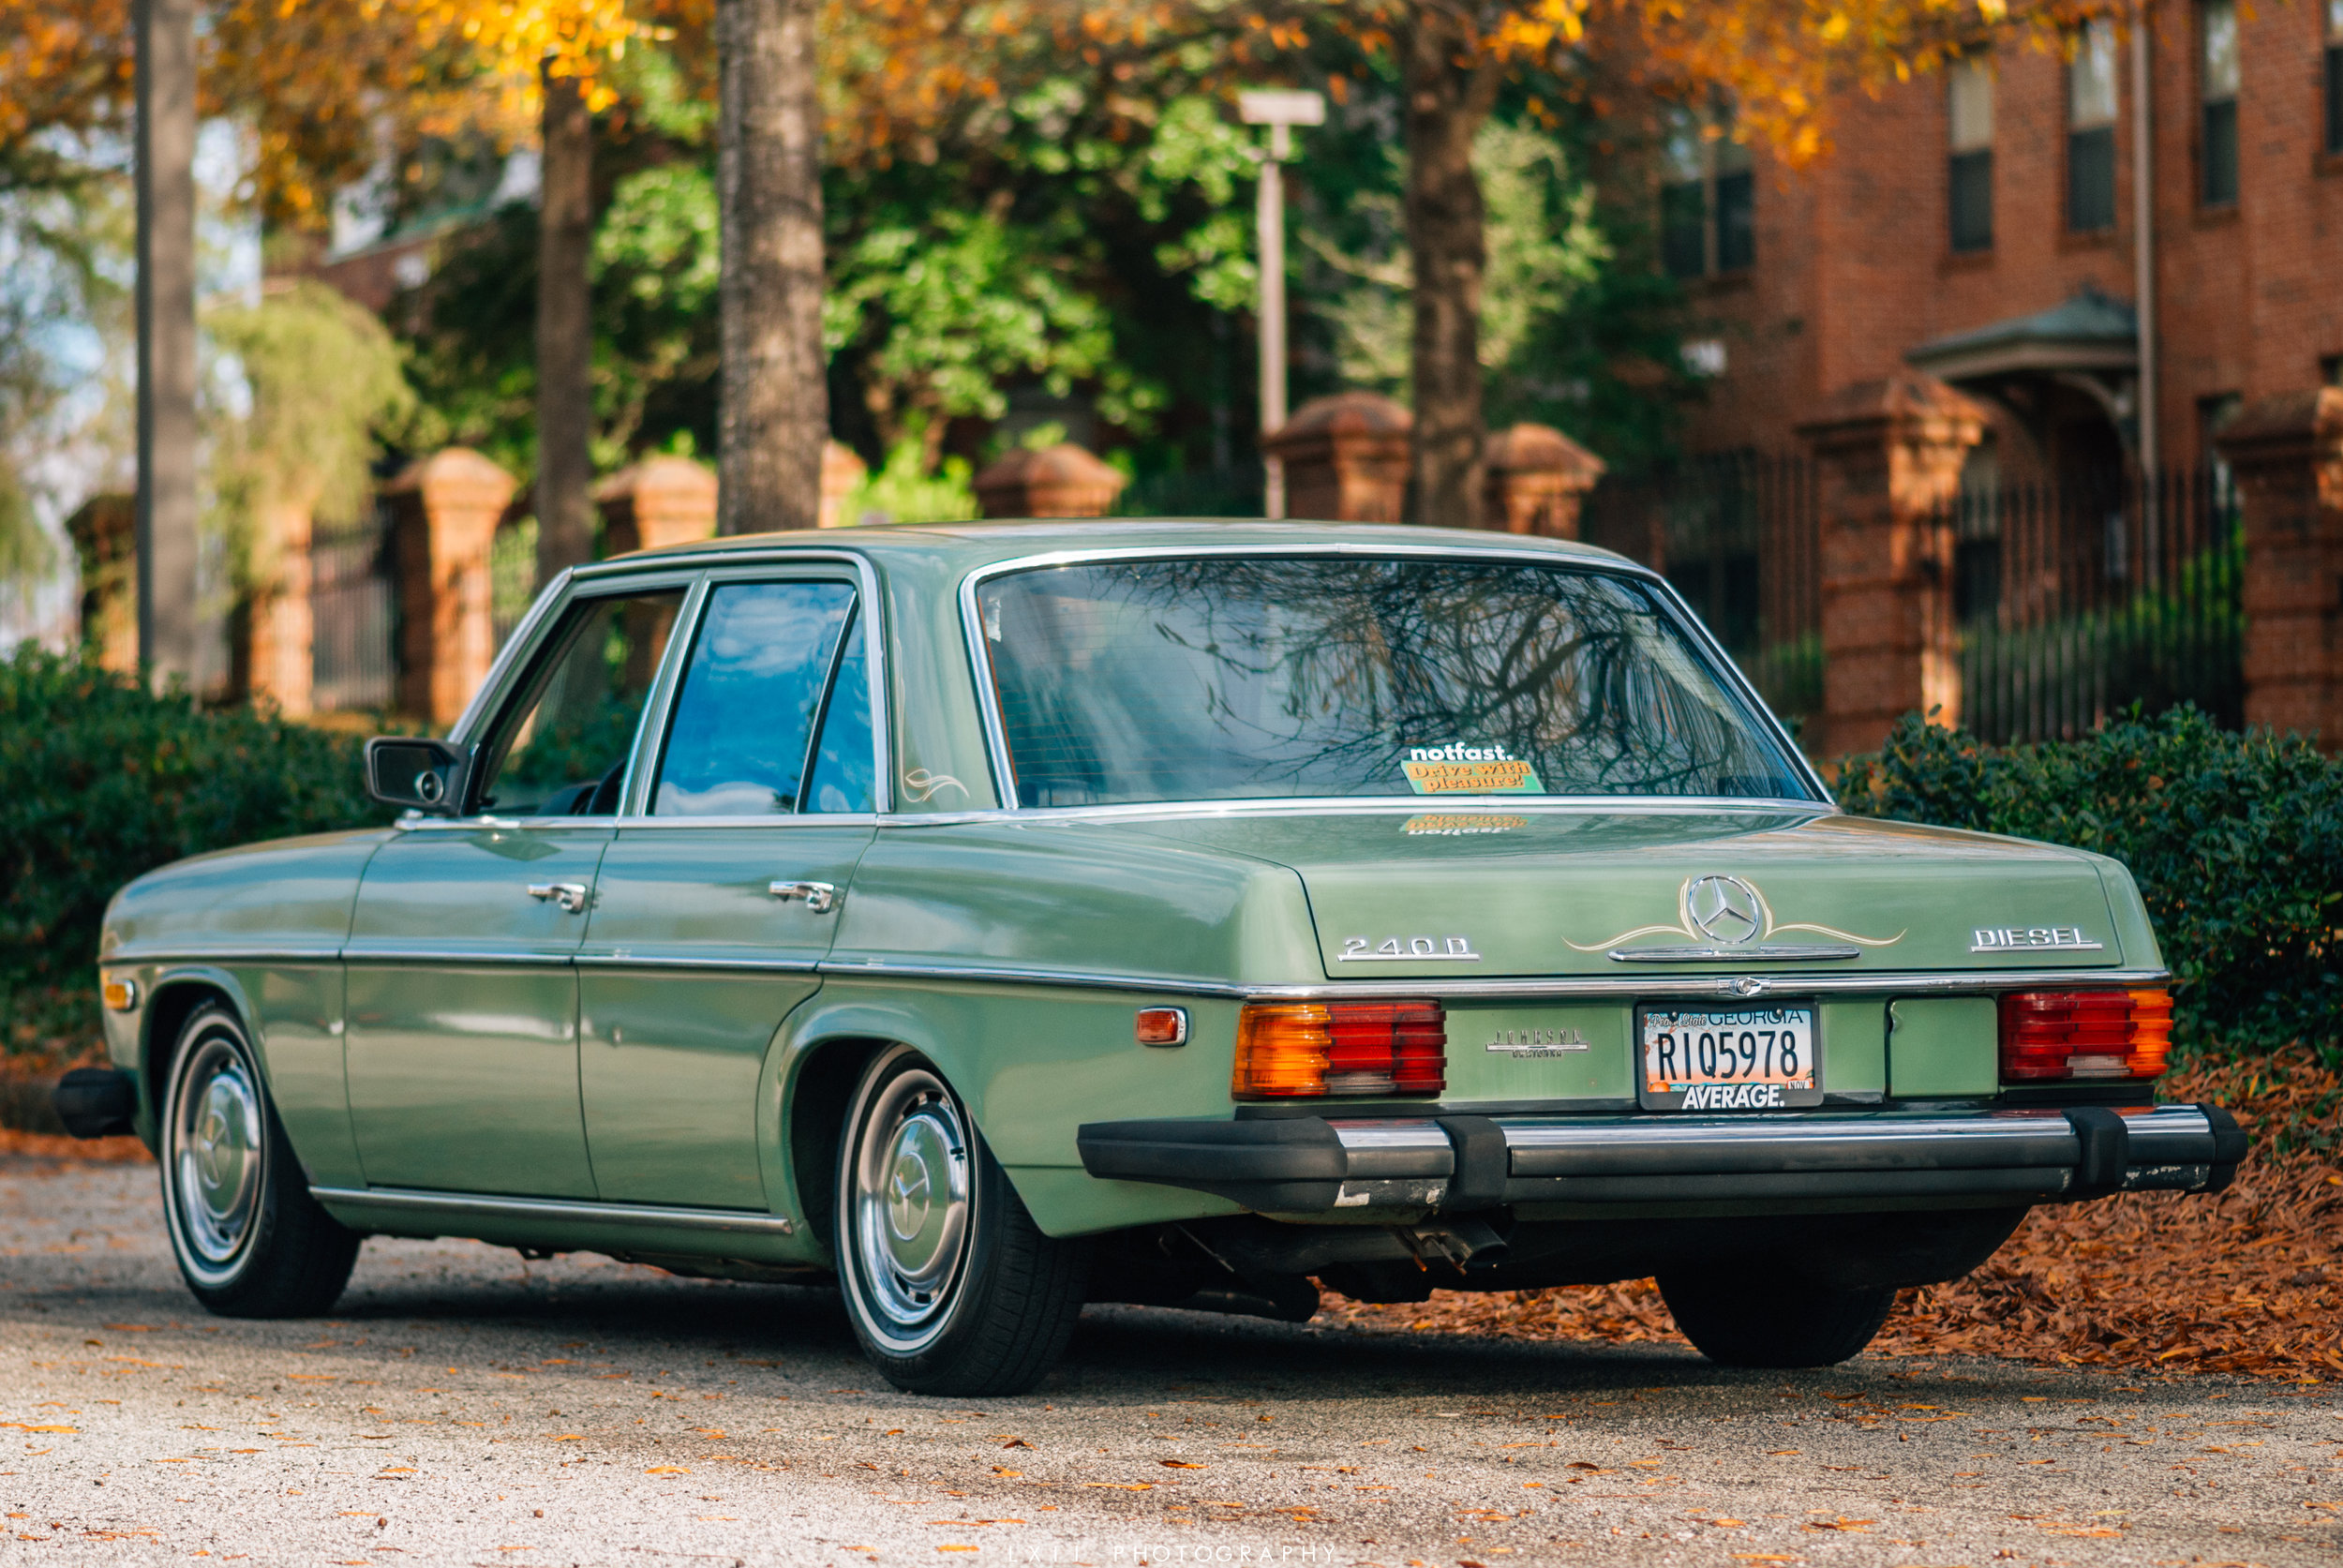 Lee's Mercedes-Benz 240D